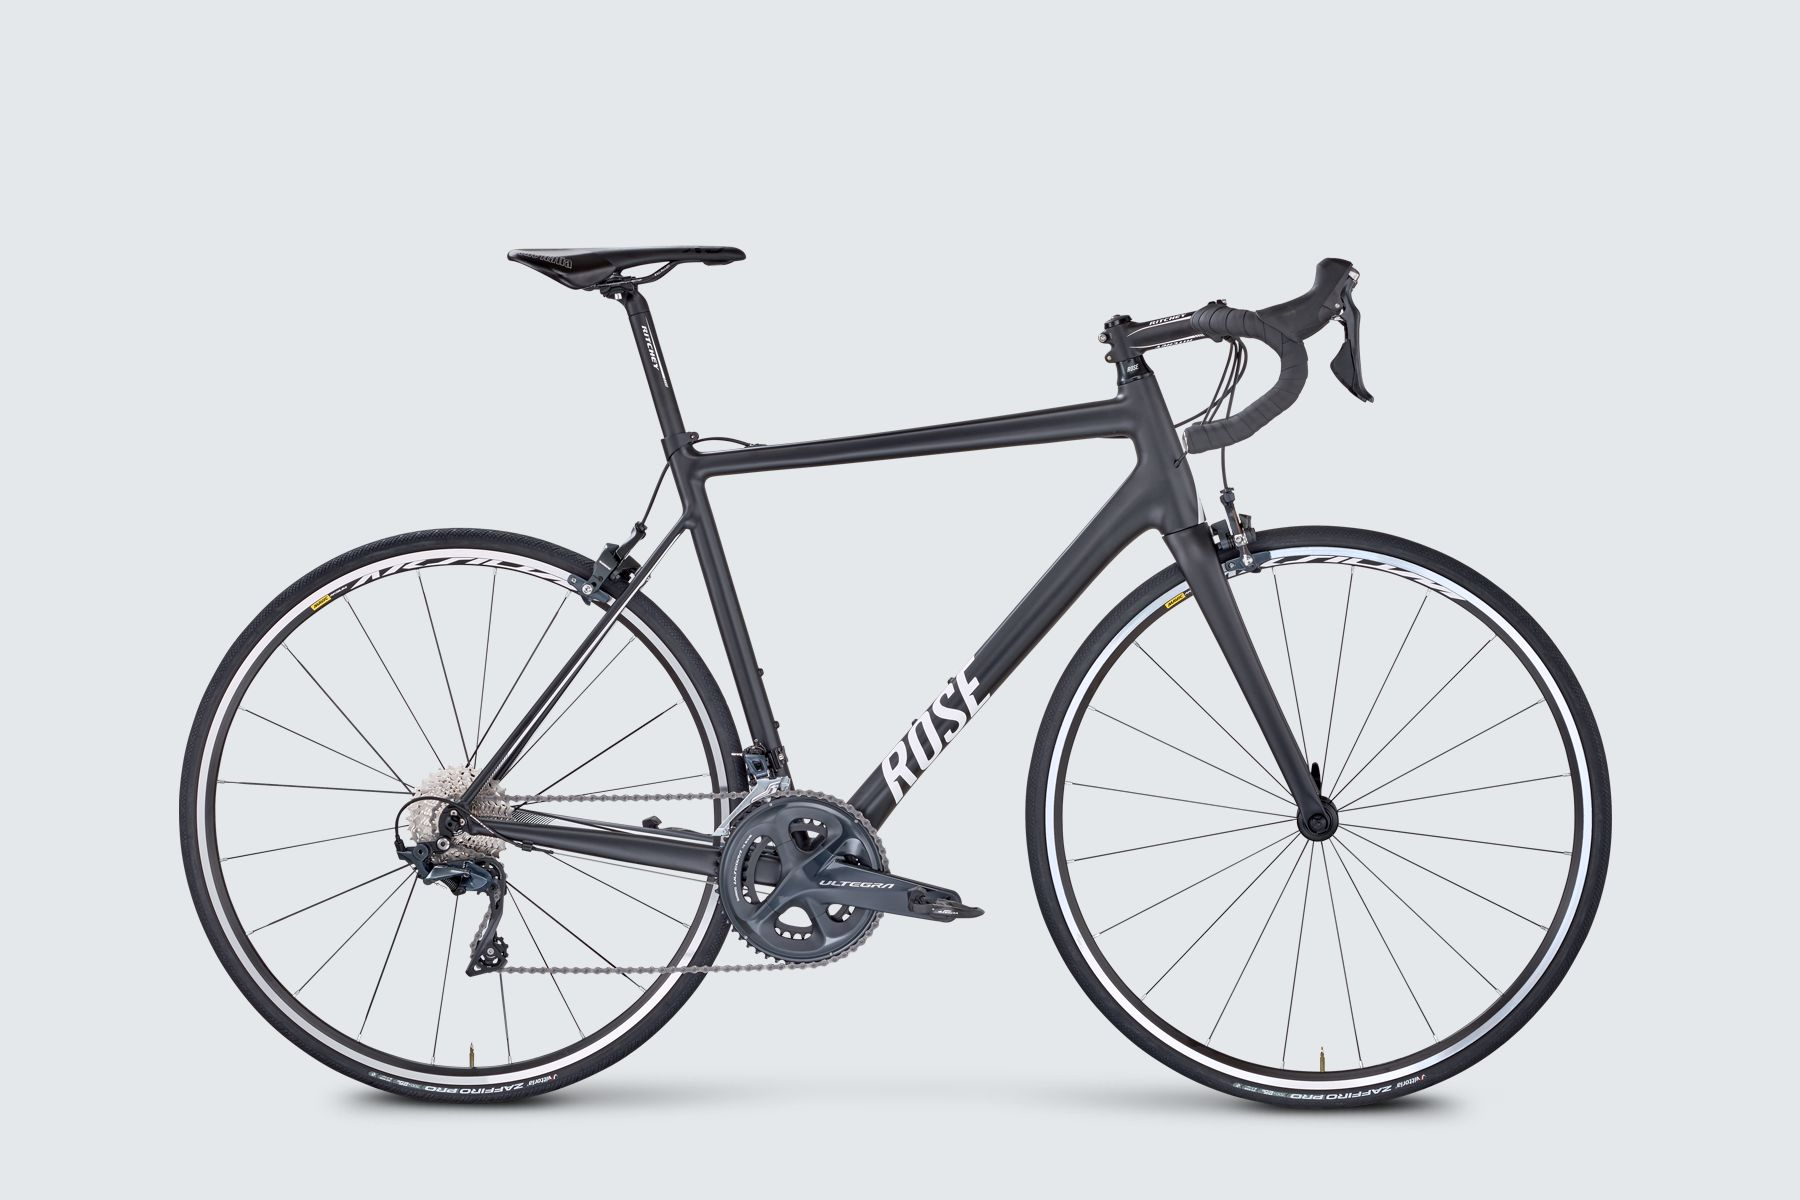 PRO SL Ultegra BIKE NOW!